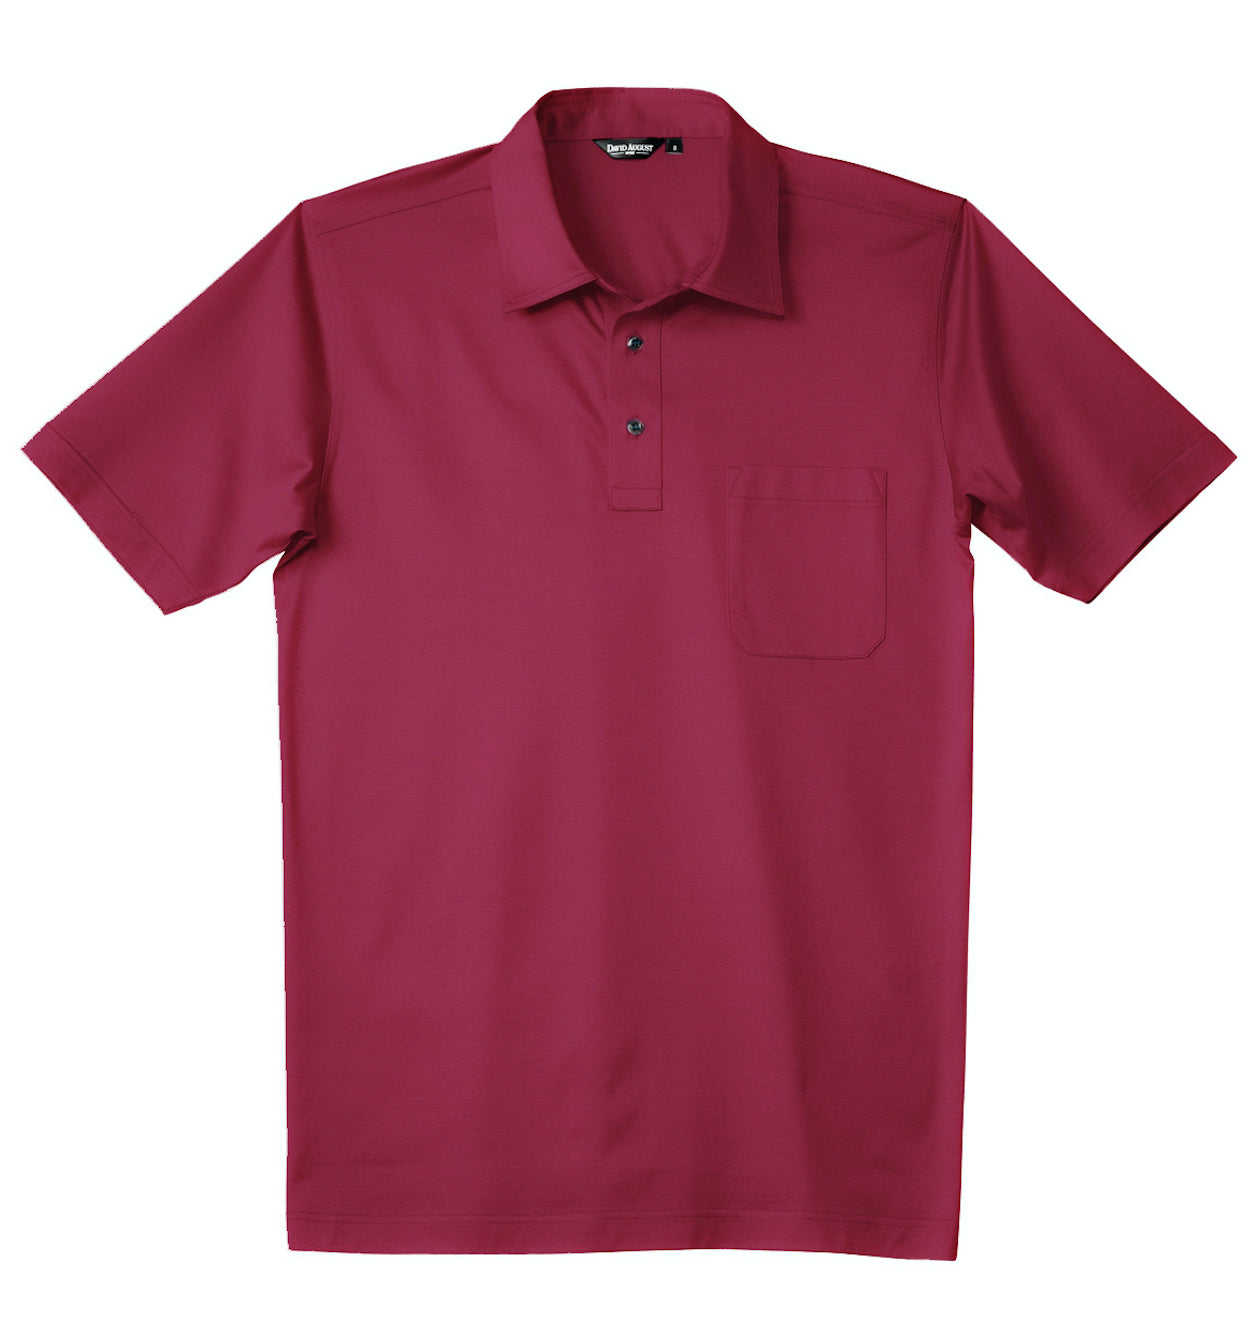 Luxury Mercerized Cotton Polo in Watermelon